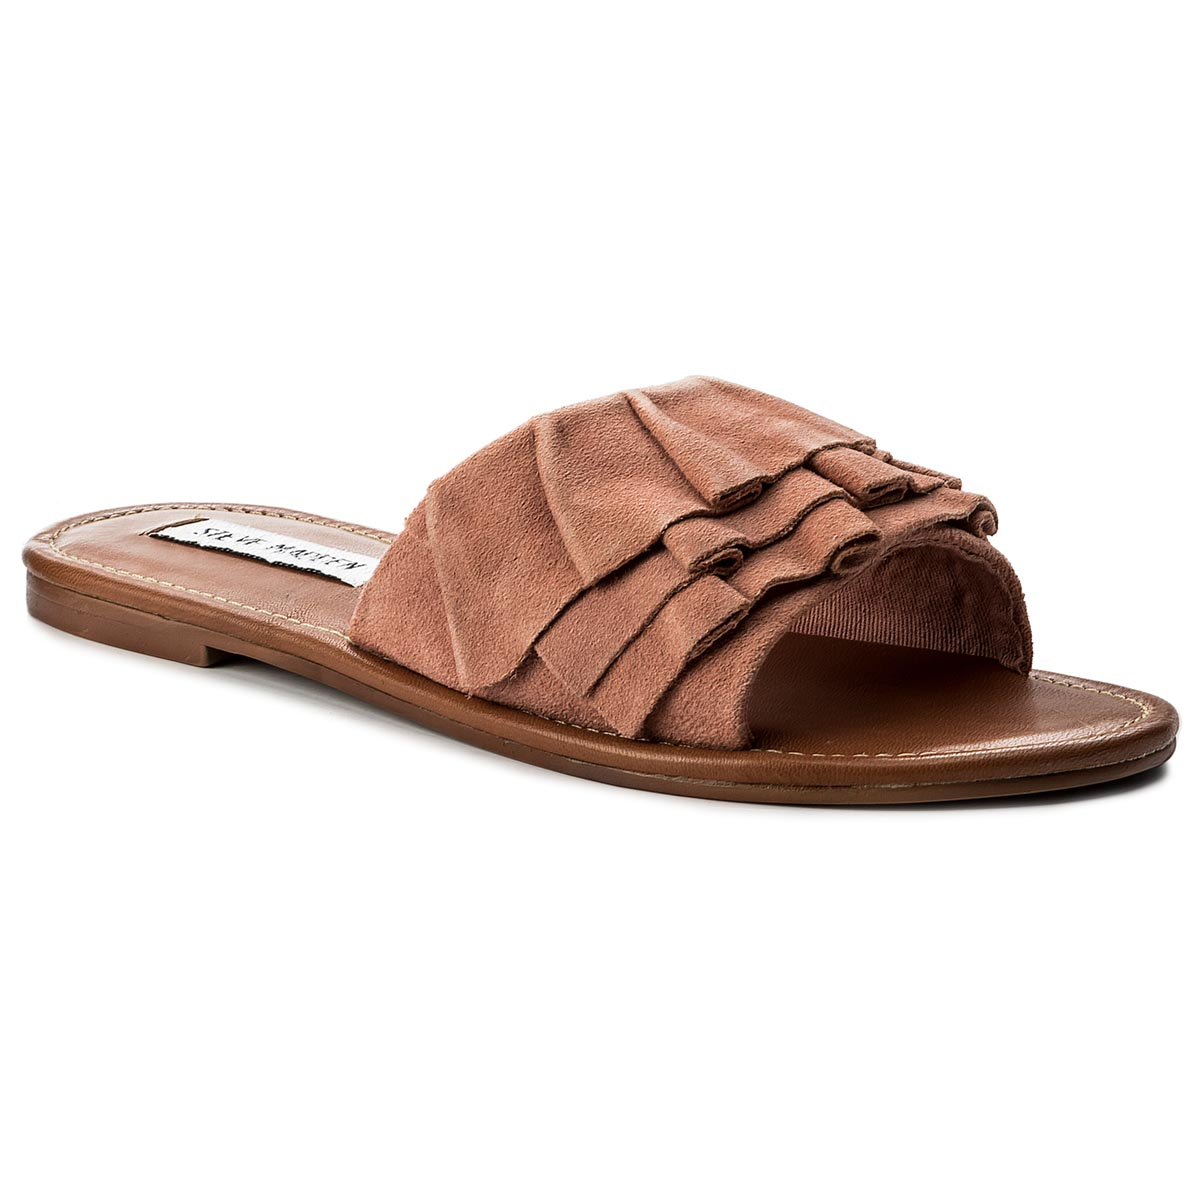 Klapki STEVE MADDEN - Getdown Slipper 91000503-0S0-10003-09026 Rose